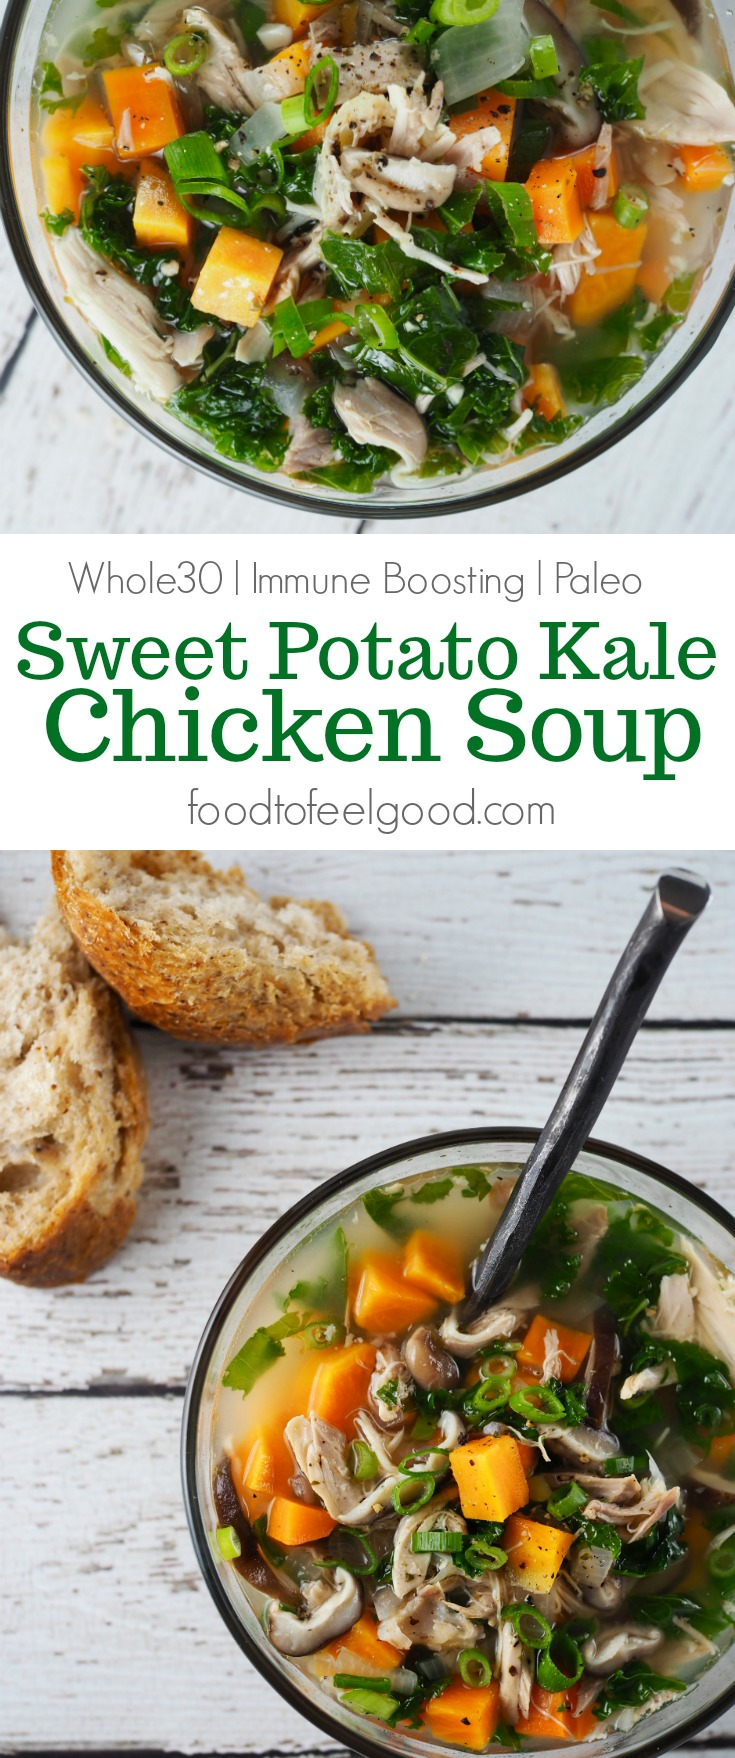 Whole30 | Immune Boosting | Paleo | Sweet Potato Kale Chicken Soup | A delicious way to stay healthy all winter long. #healthyrecipes #paleo #chicken #whole30 #whole30recipes